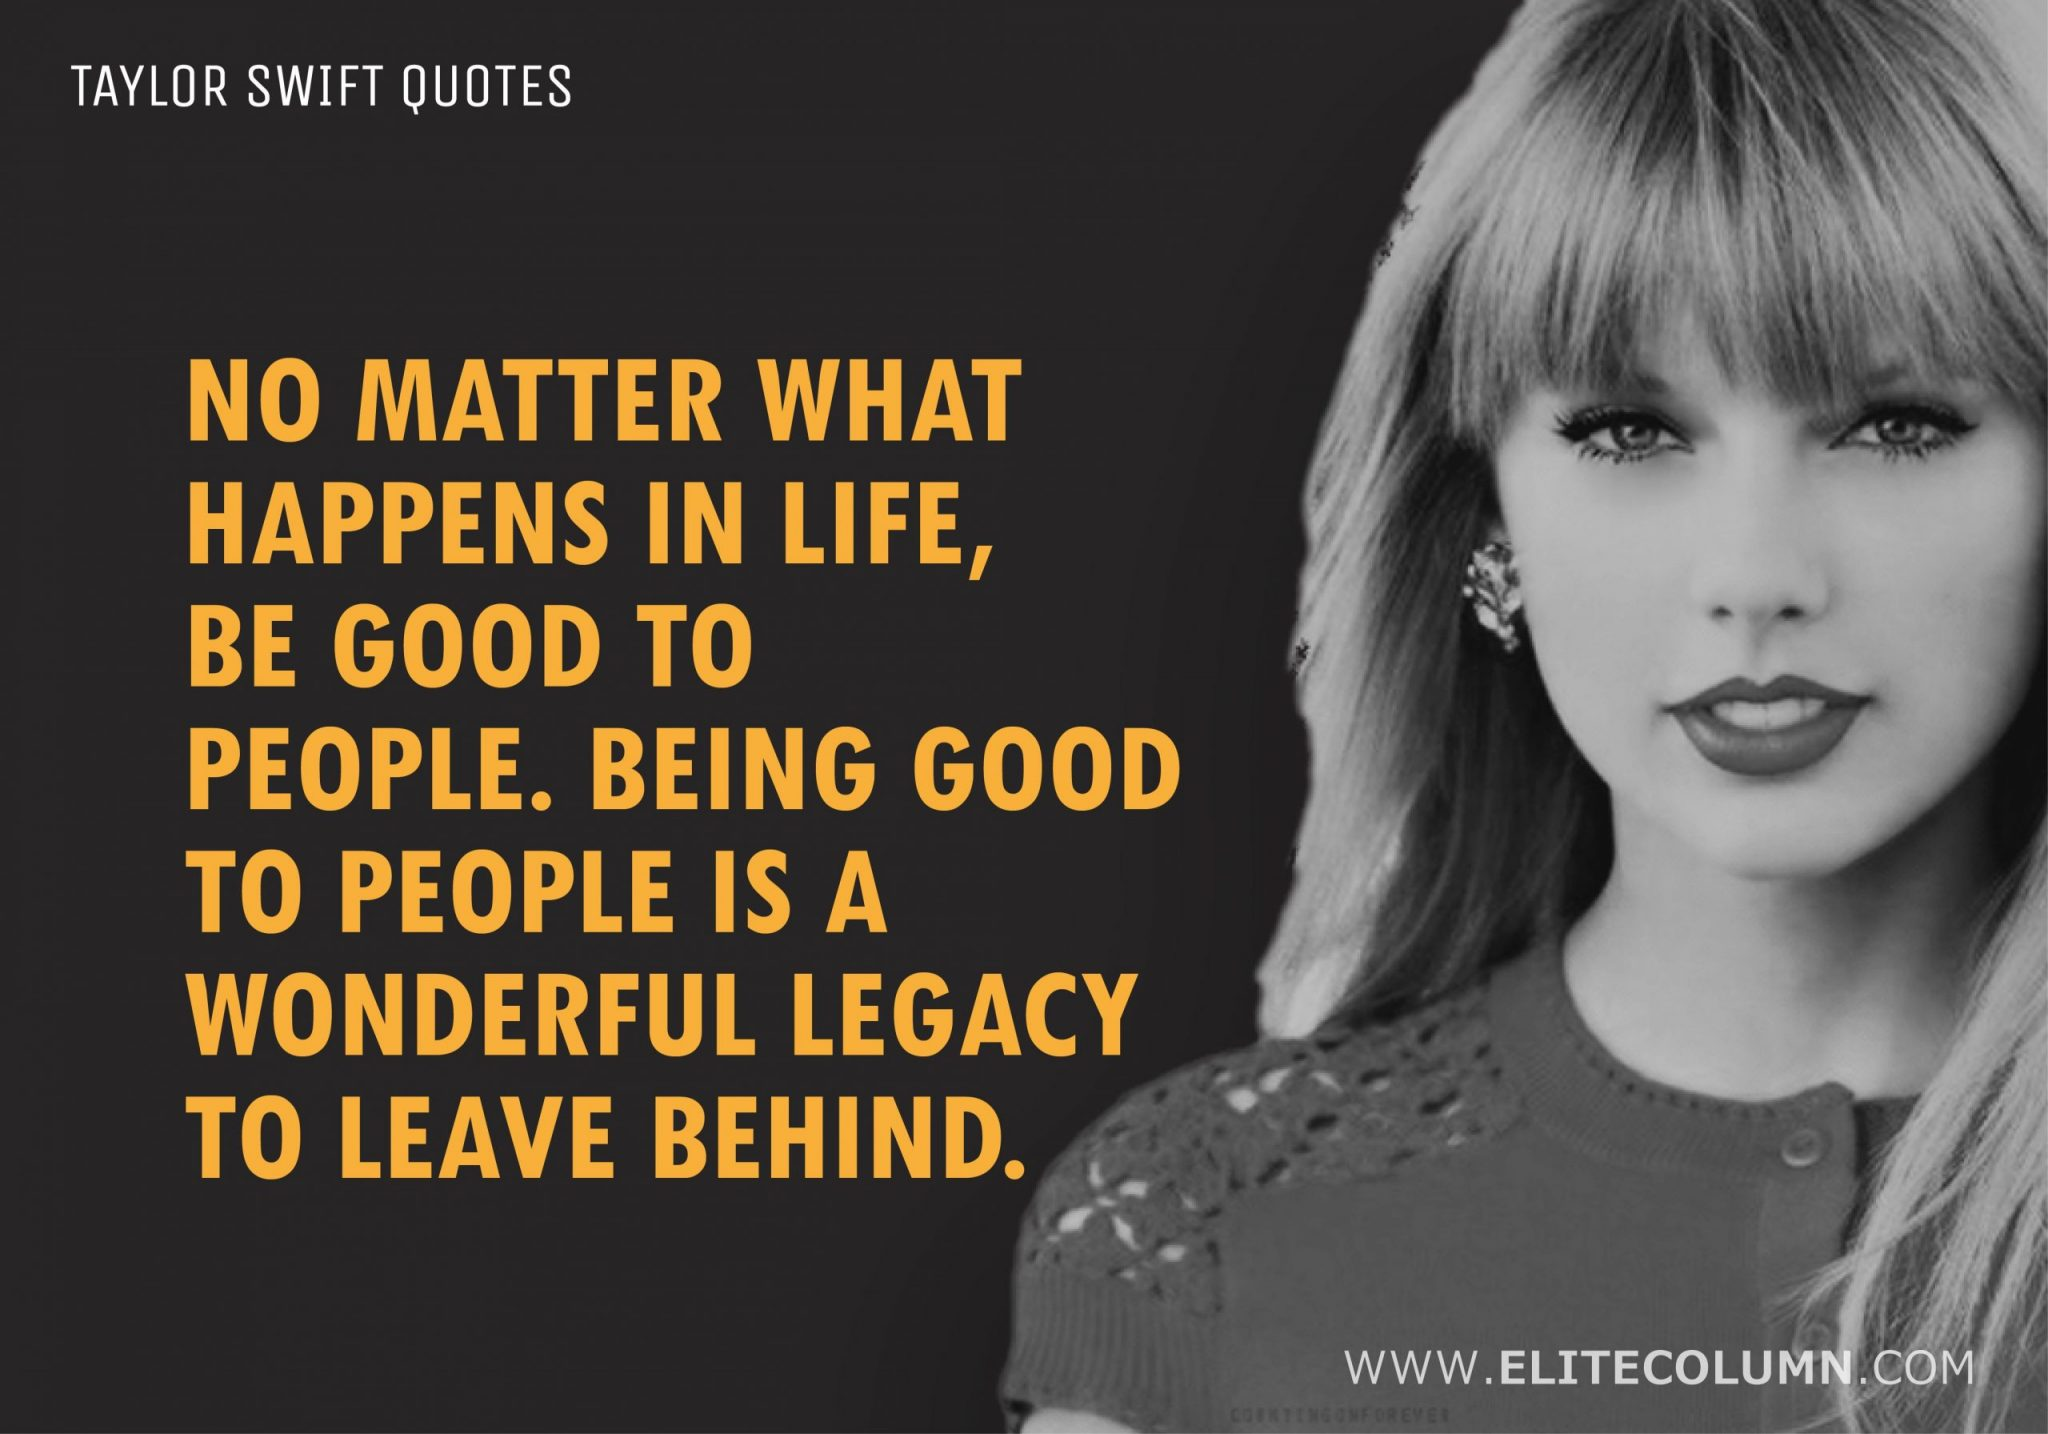 Taylor Swift Quotes (6)